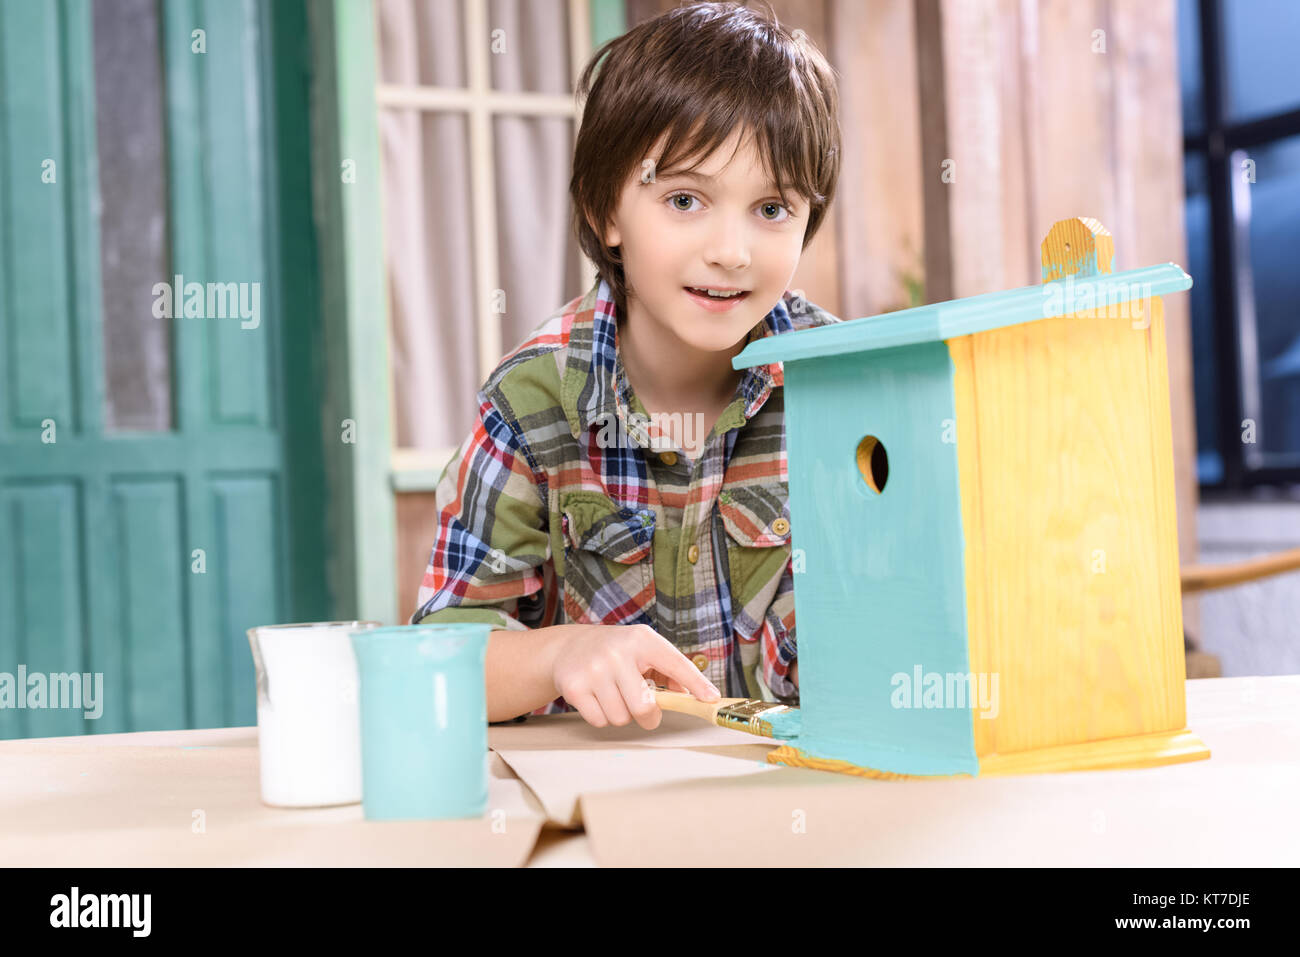 Cute little boy painting wooden birdhouse and smiling at camera - Stock Image